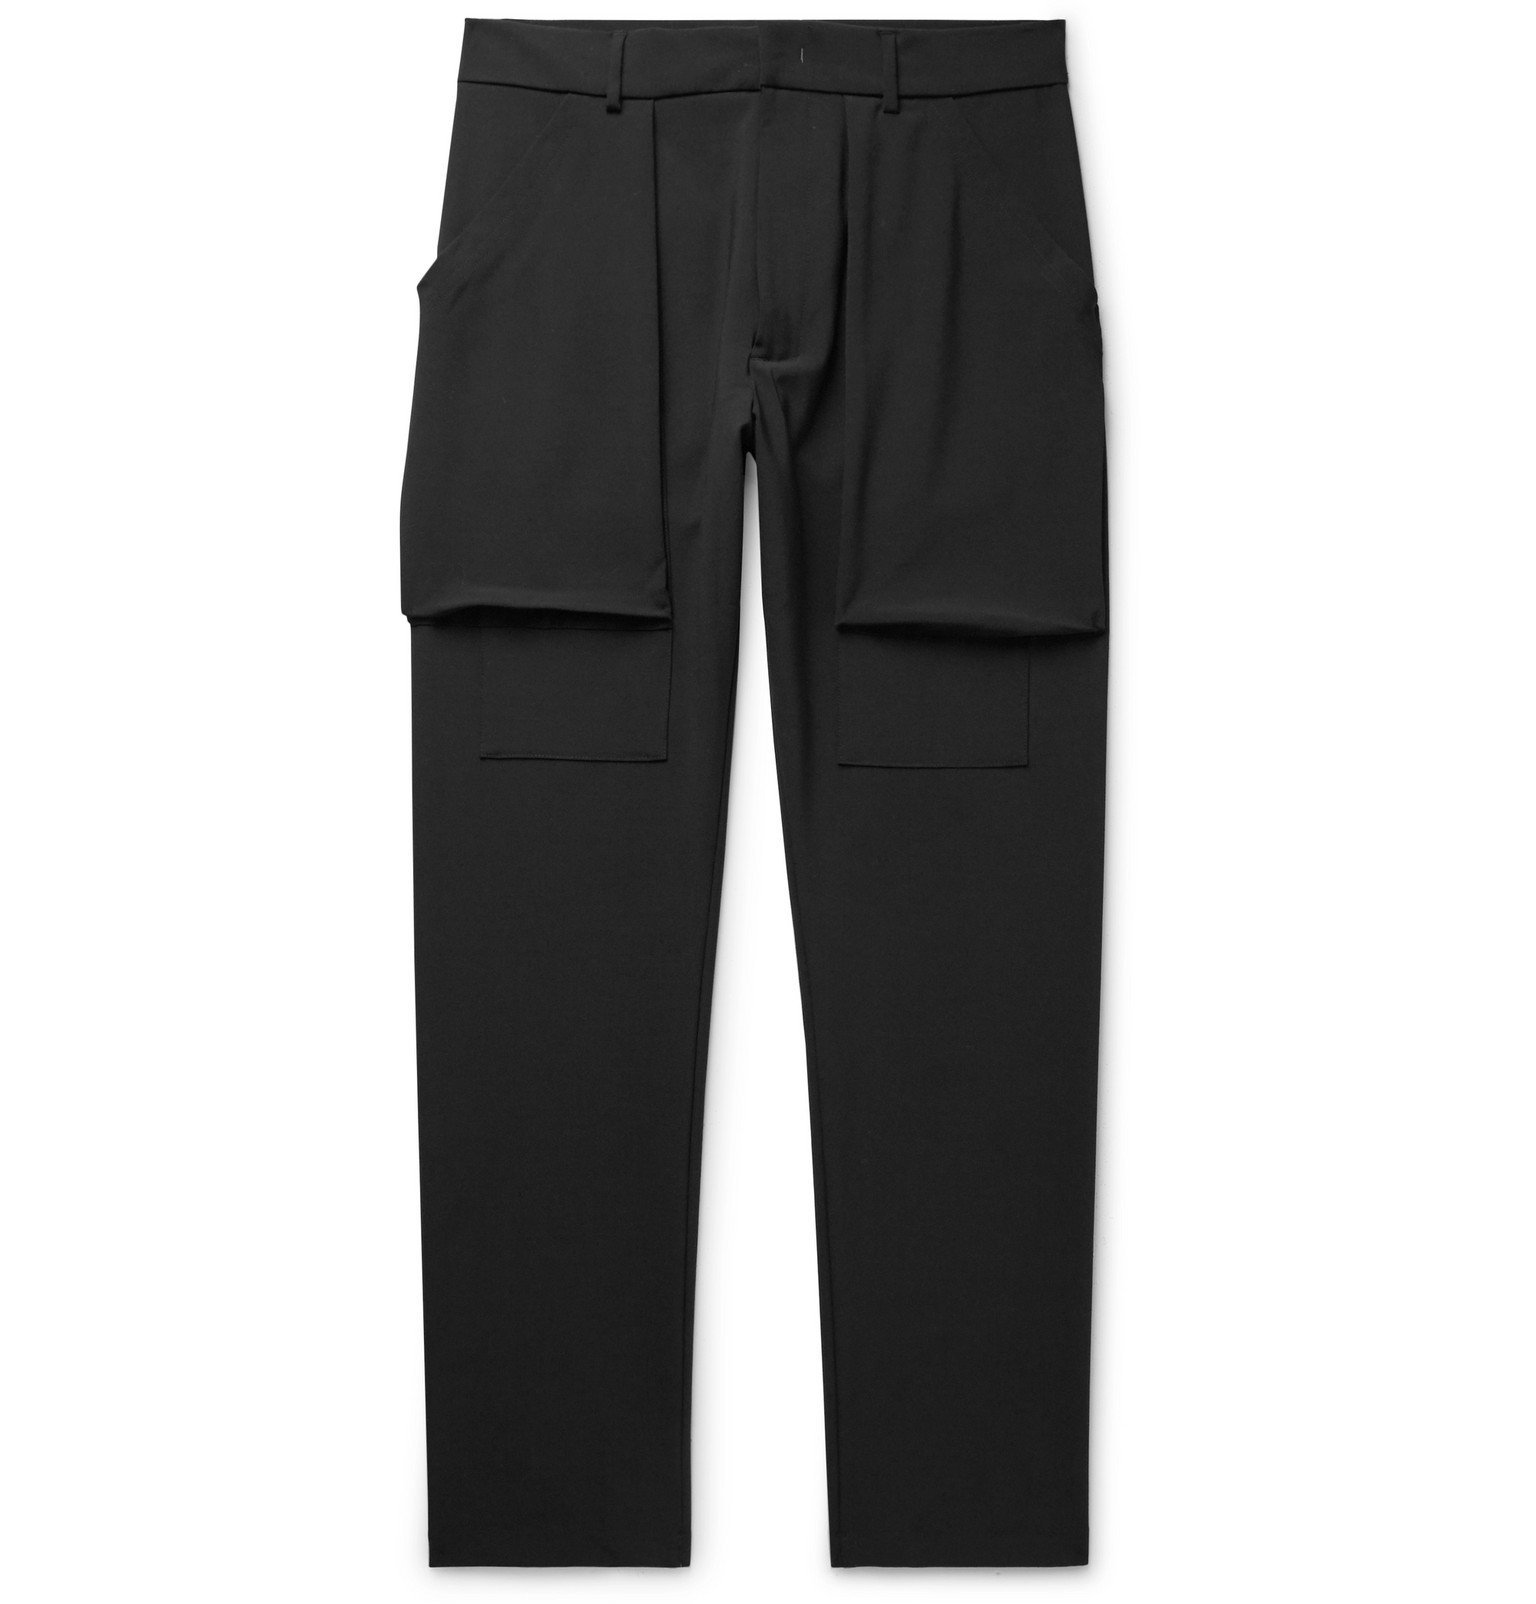 Photo: 424 - Black Slim-Fit Woven Cargo Trousers - Black